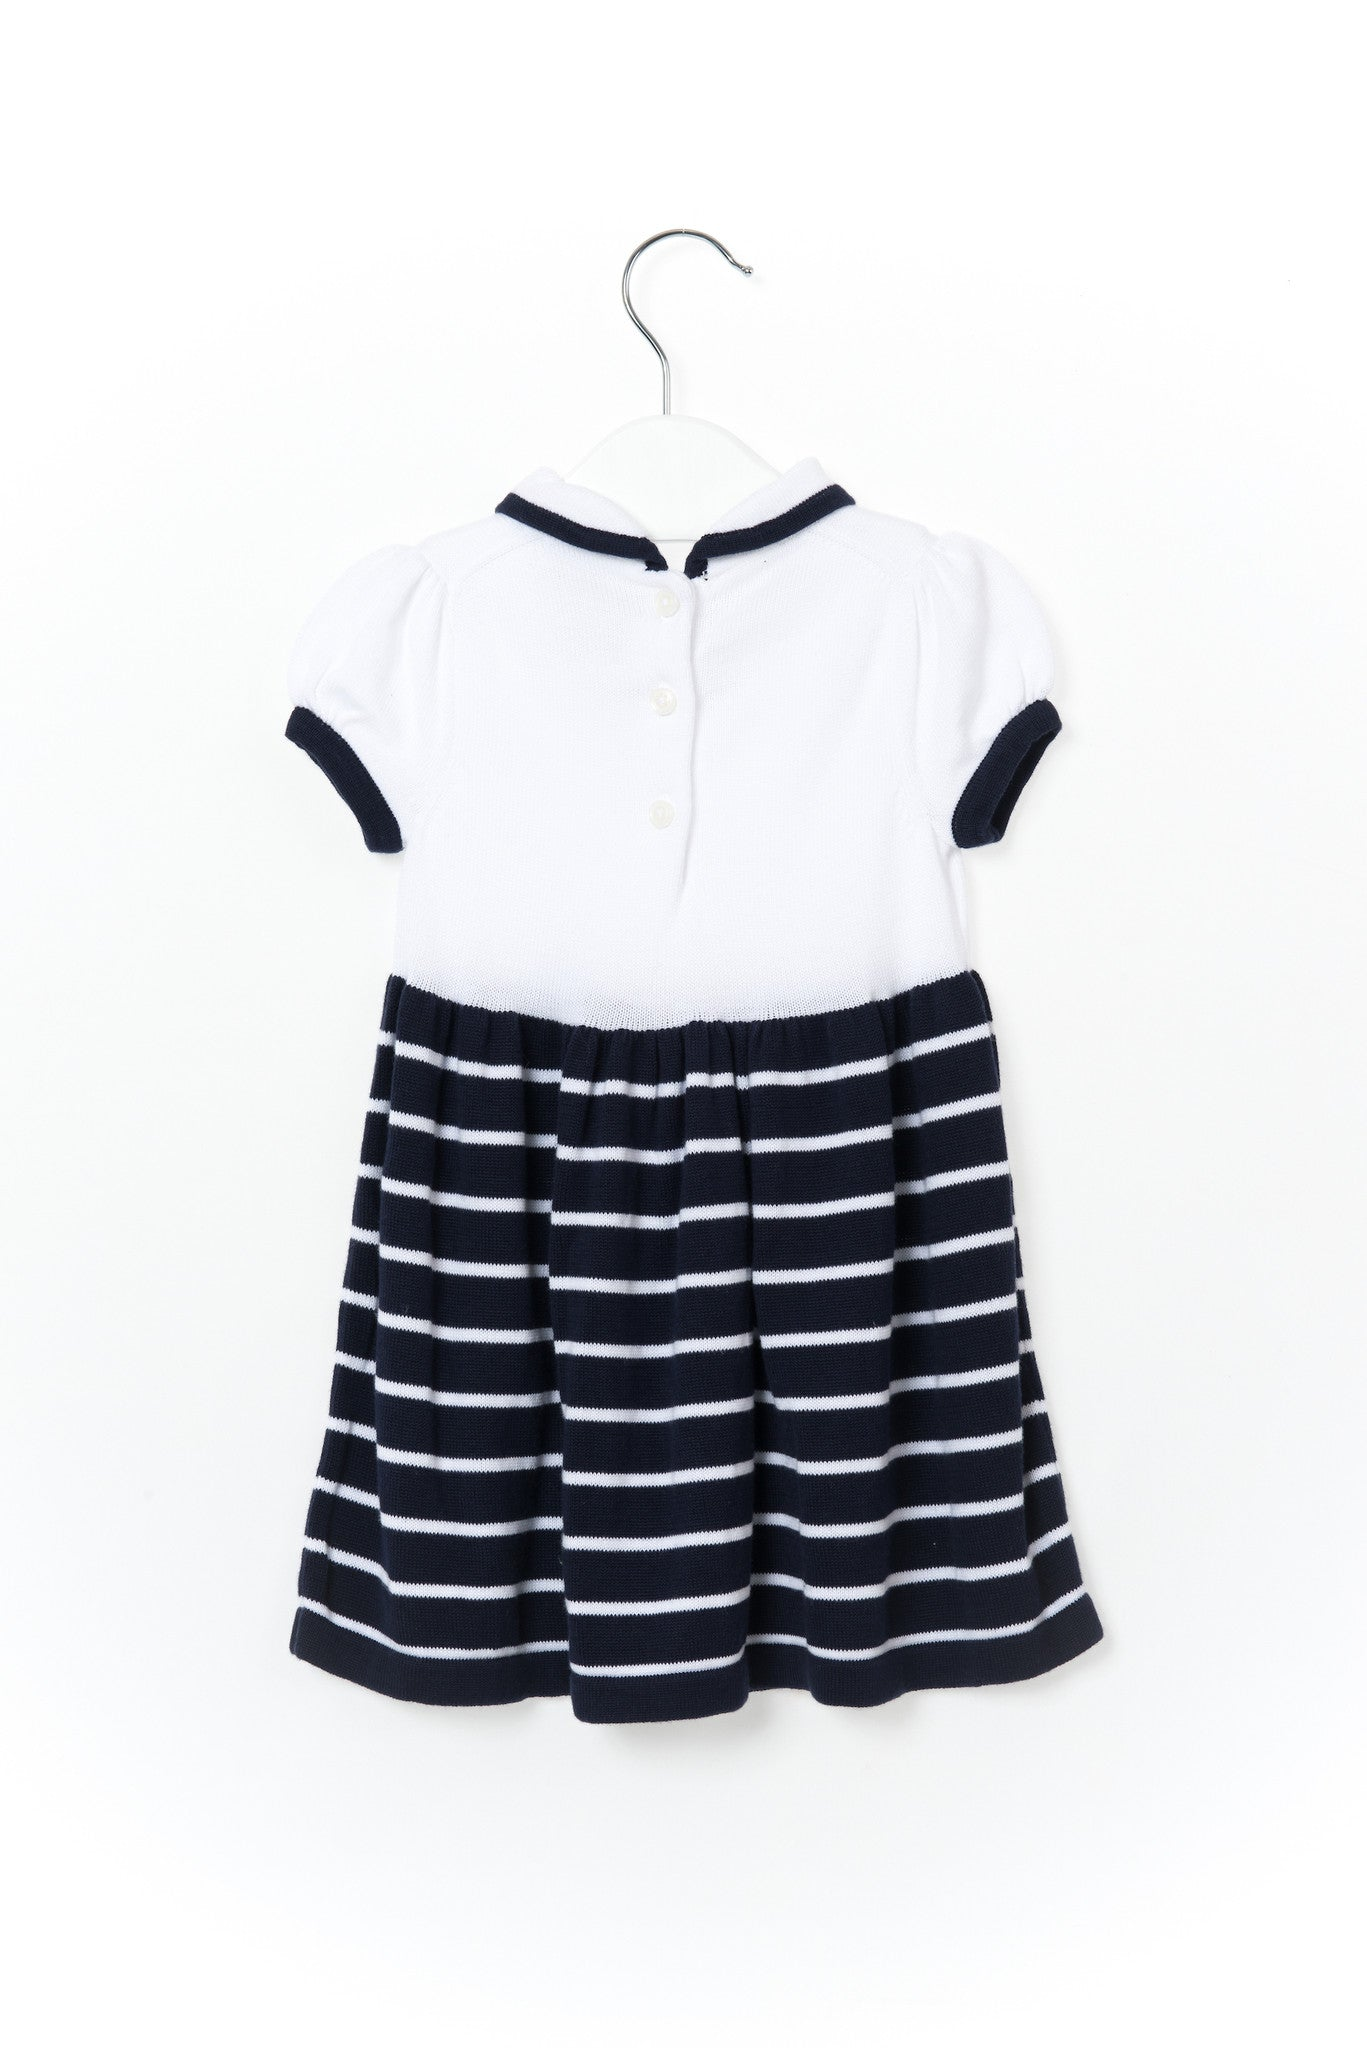 10001260 Janie & Jack Baby~Dress 6-12M at Retykle